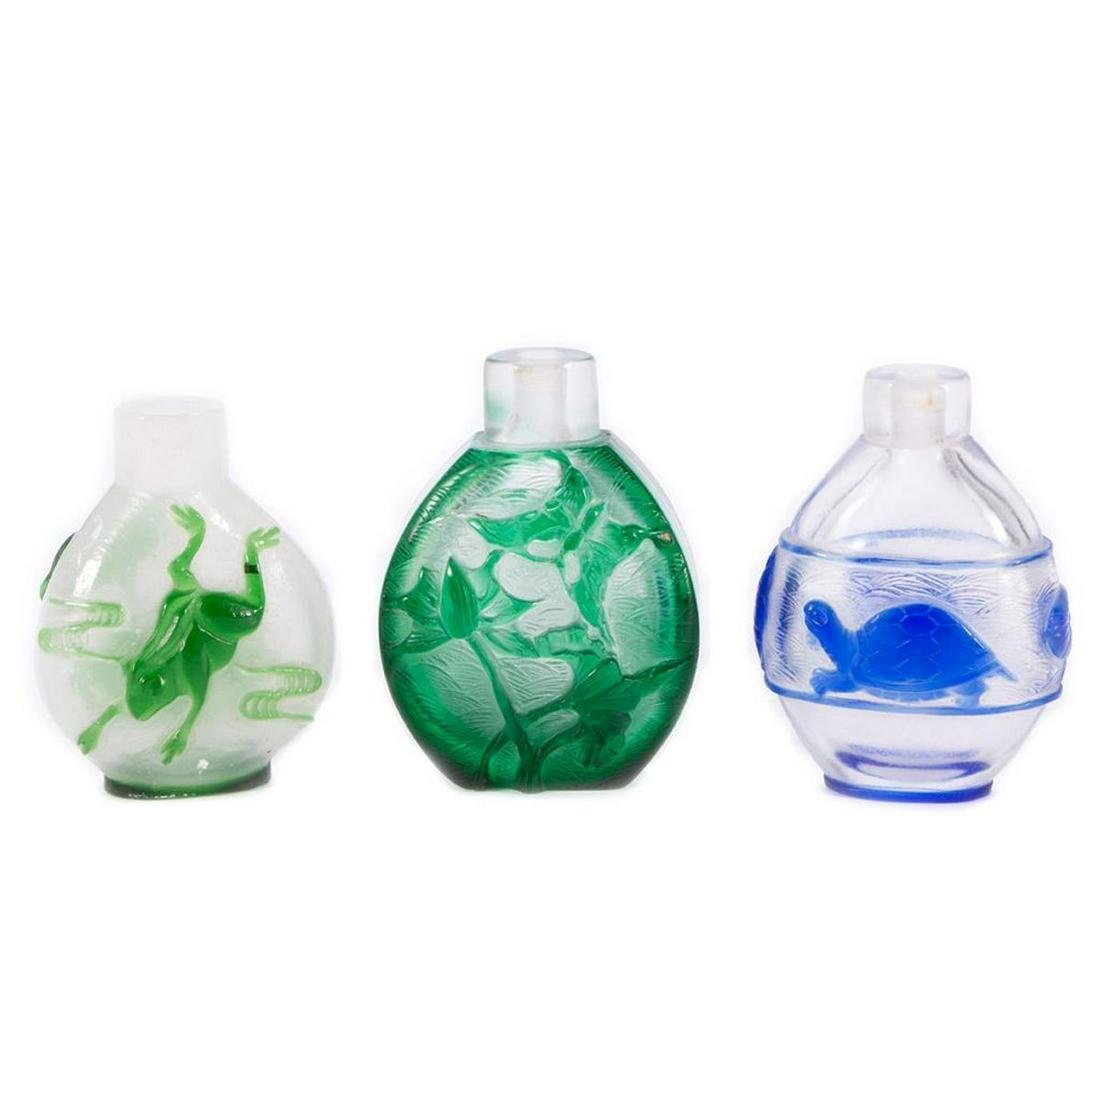 Three Peking glass snuff bottles.